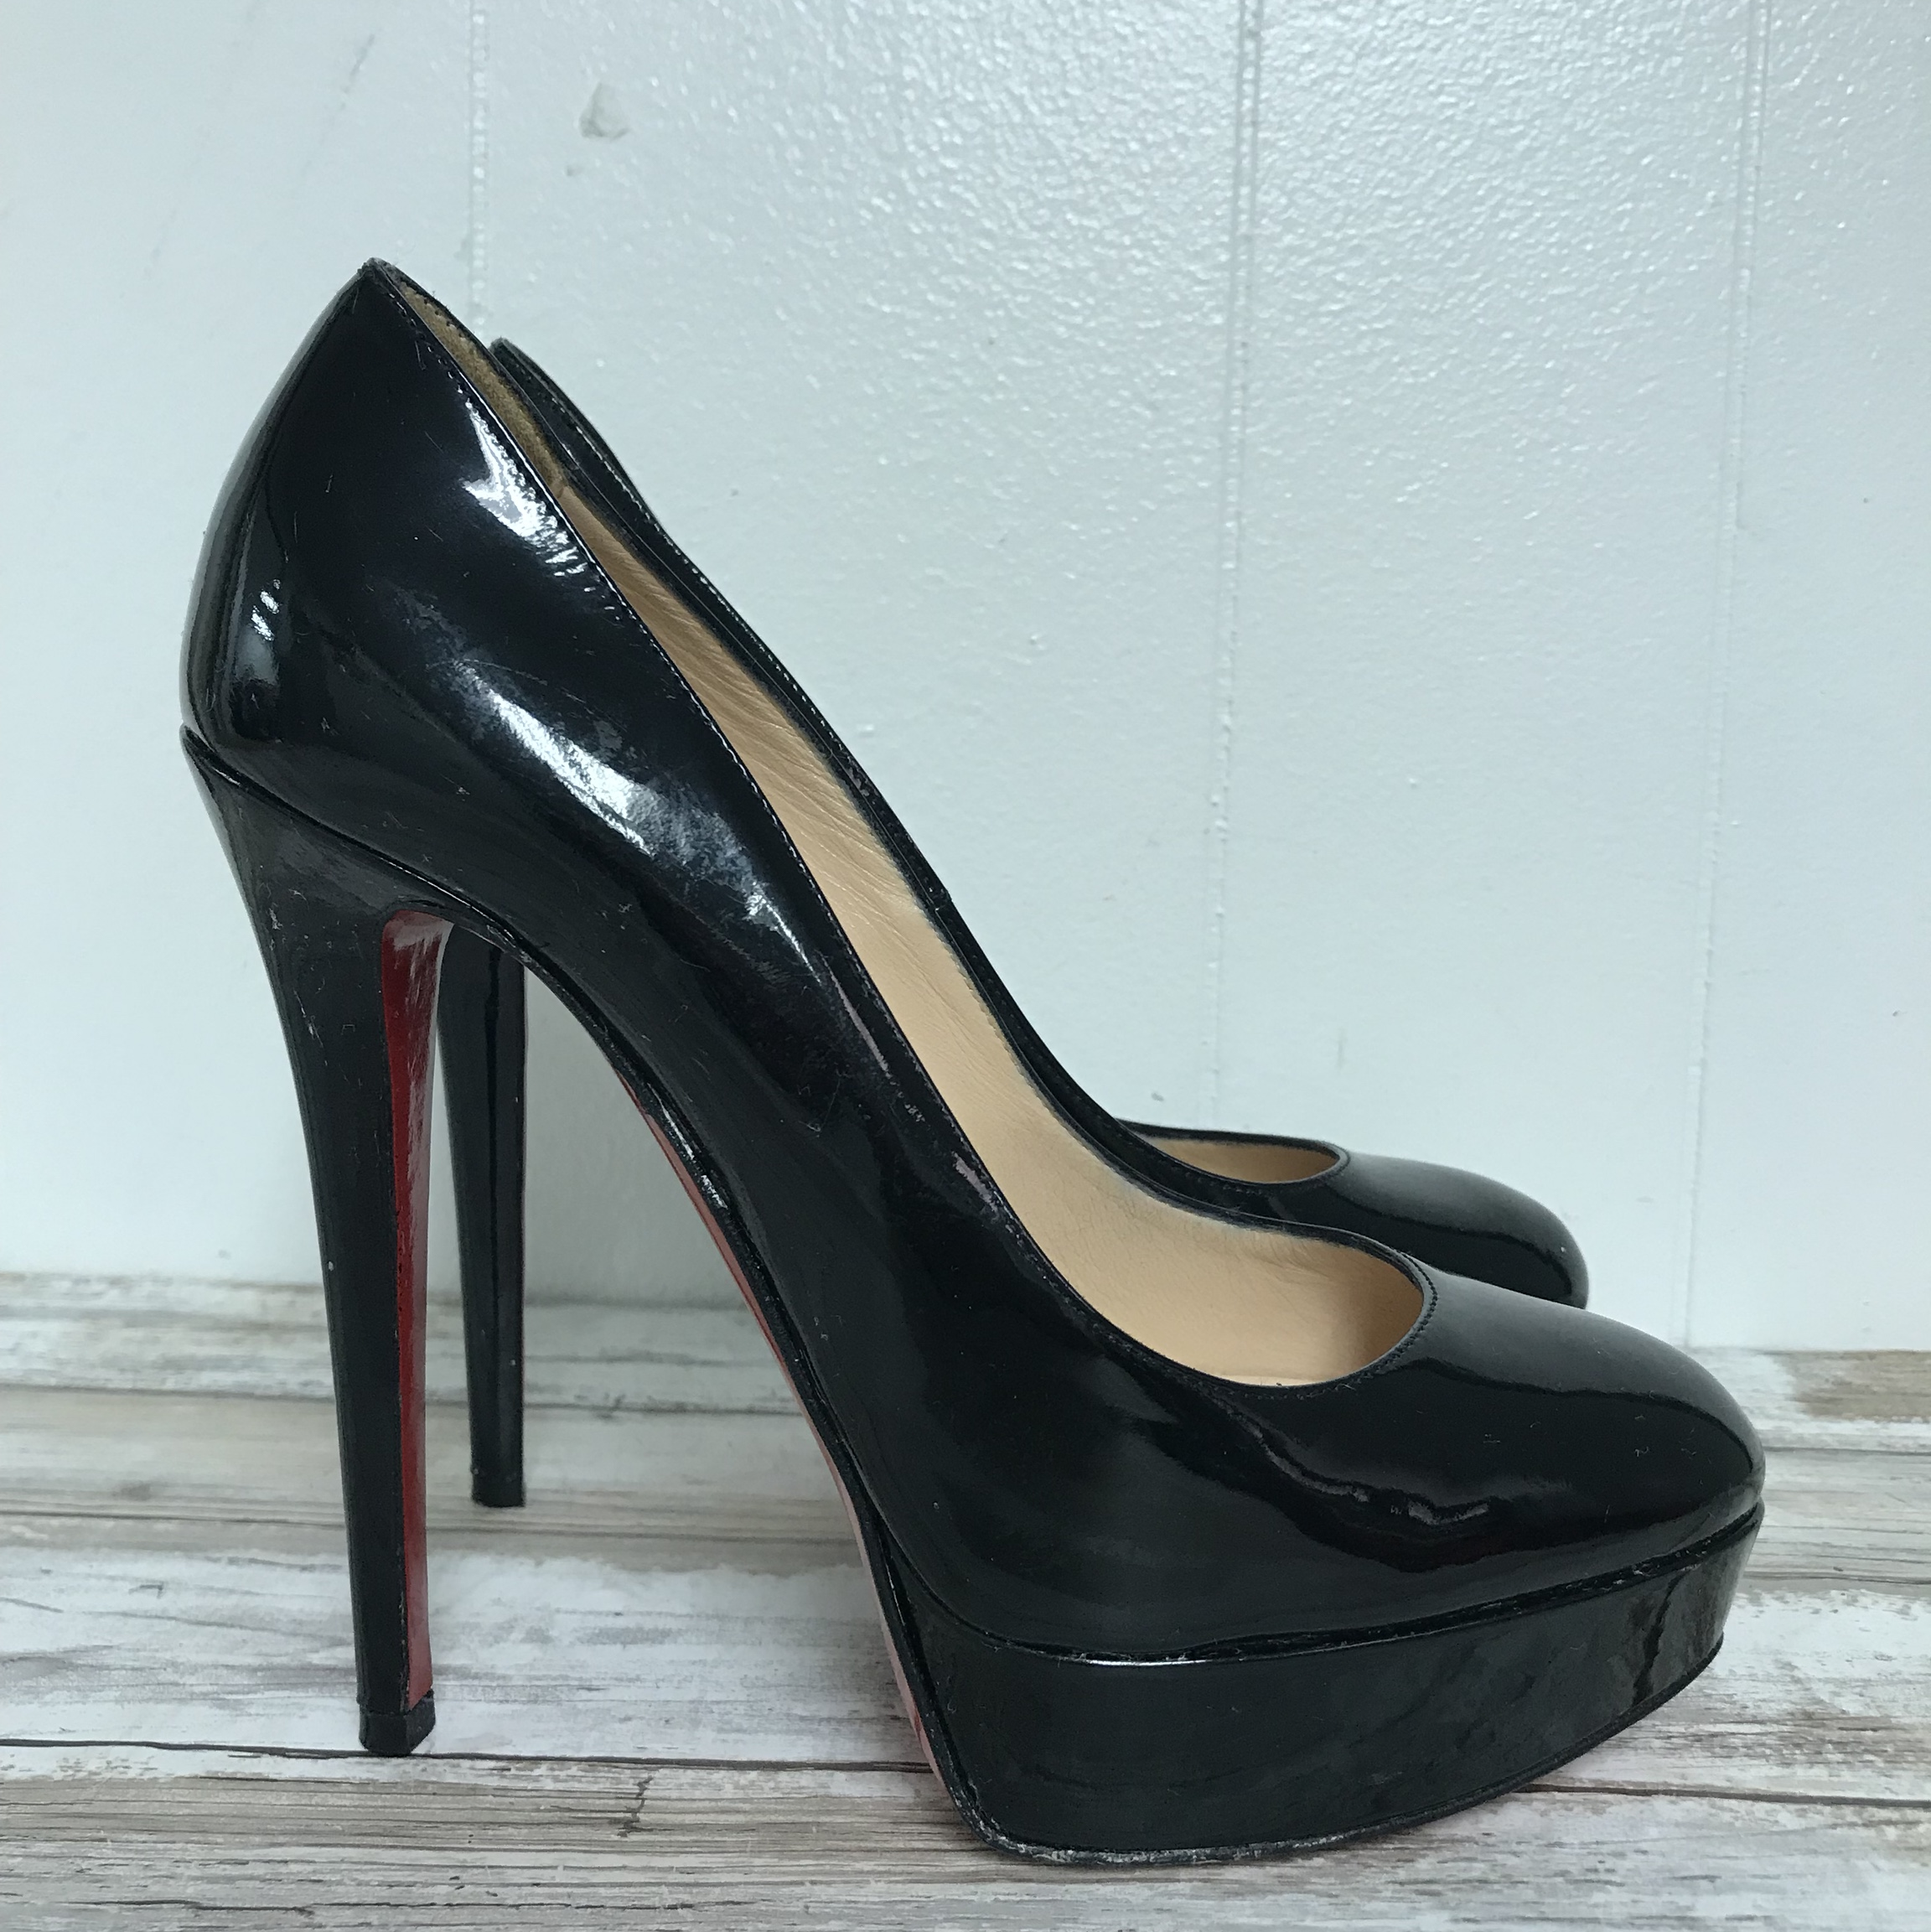 finest selection 8ed80 a714a CHRISTIAN LOUBOUTIN BIANCA BLACK PLATFORM ...